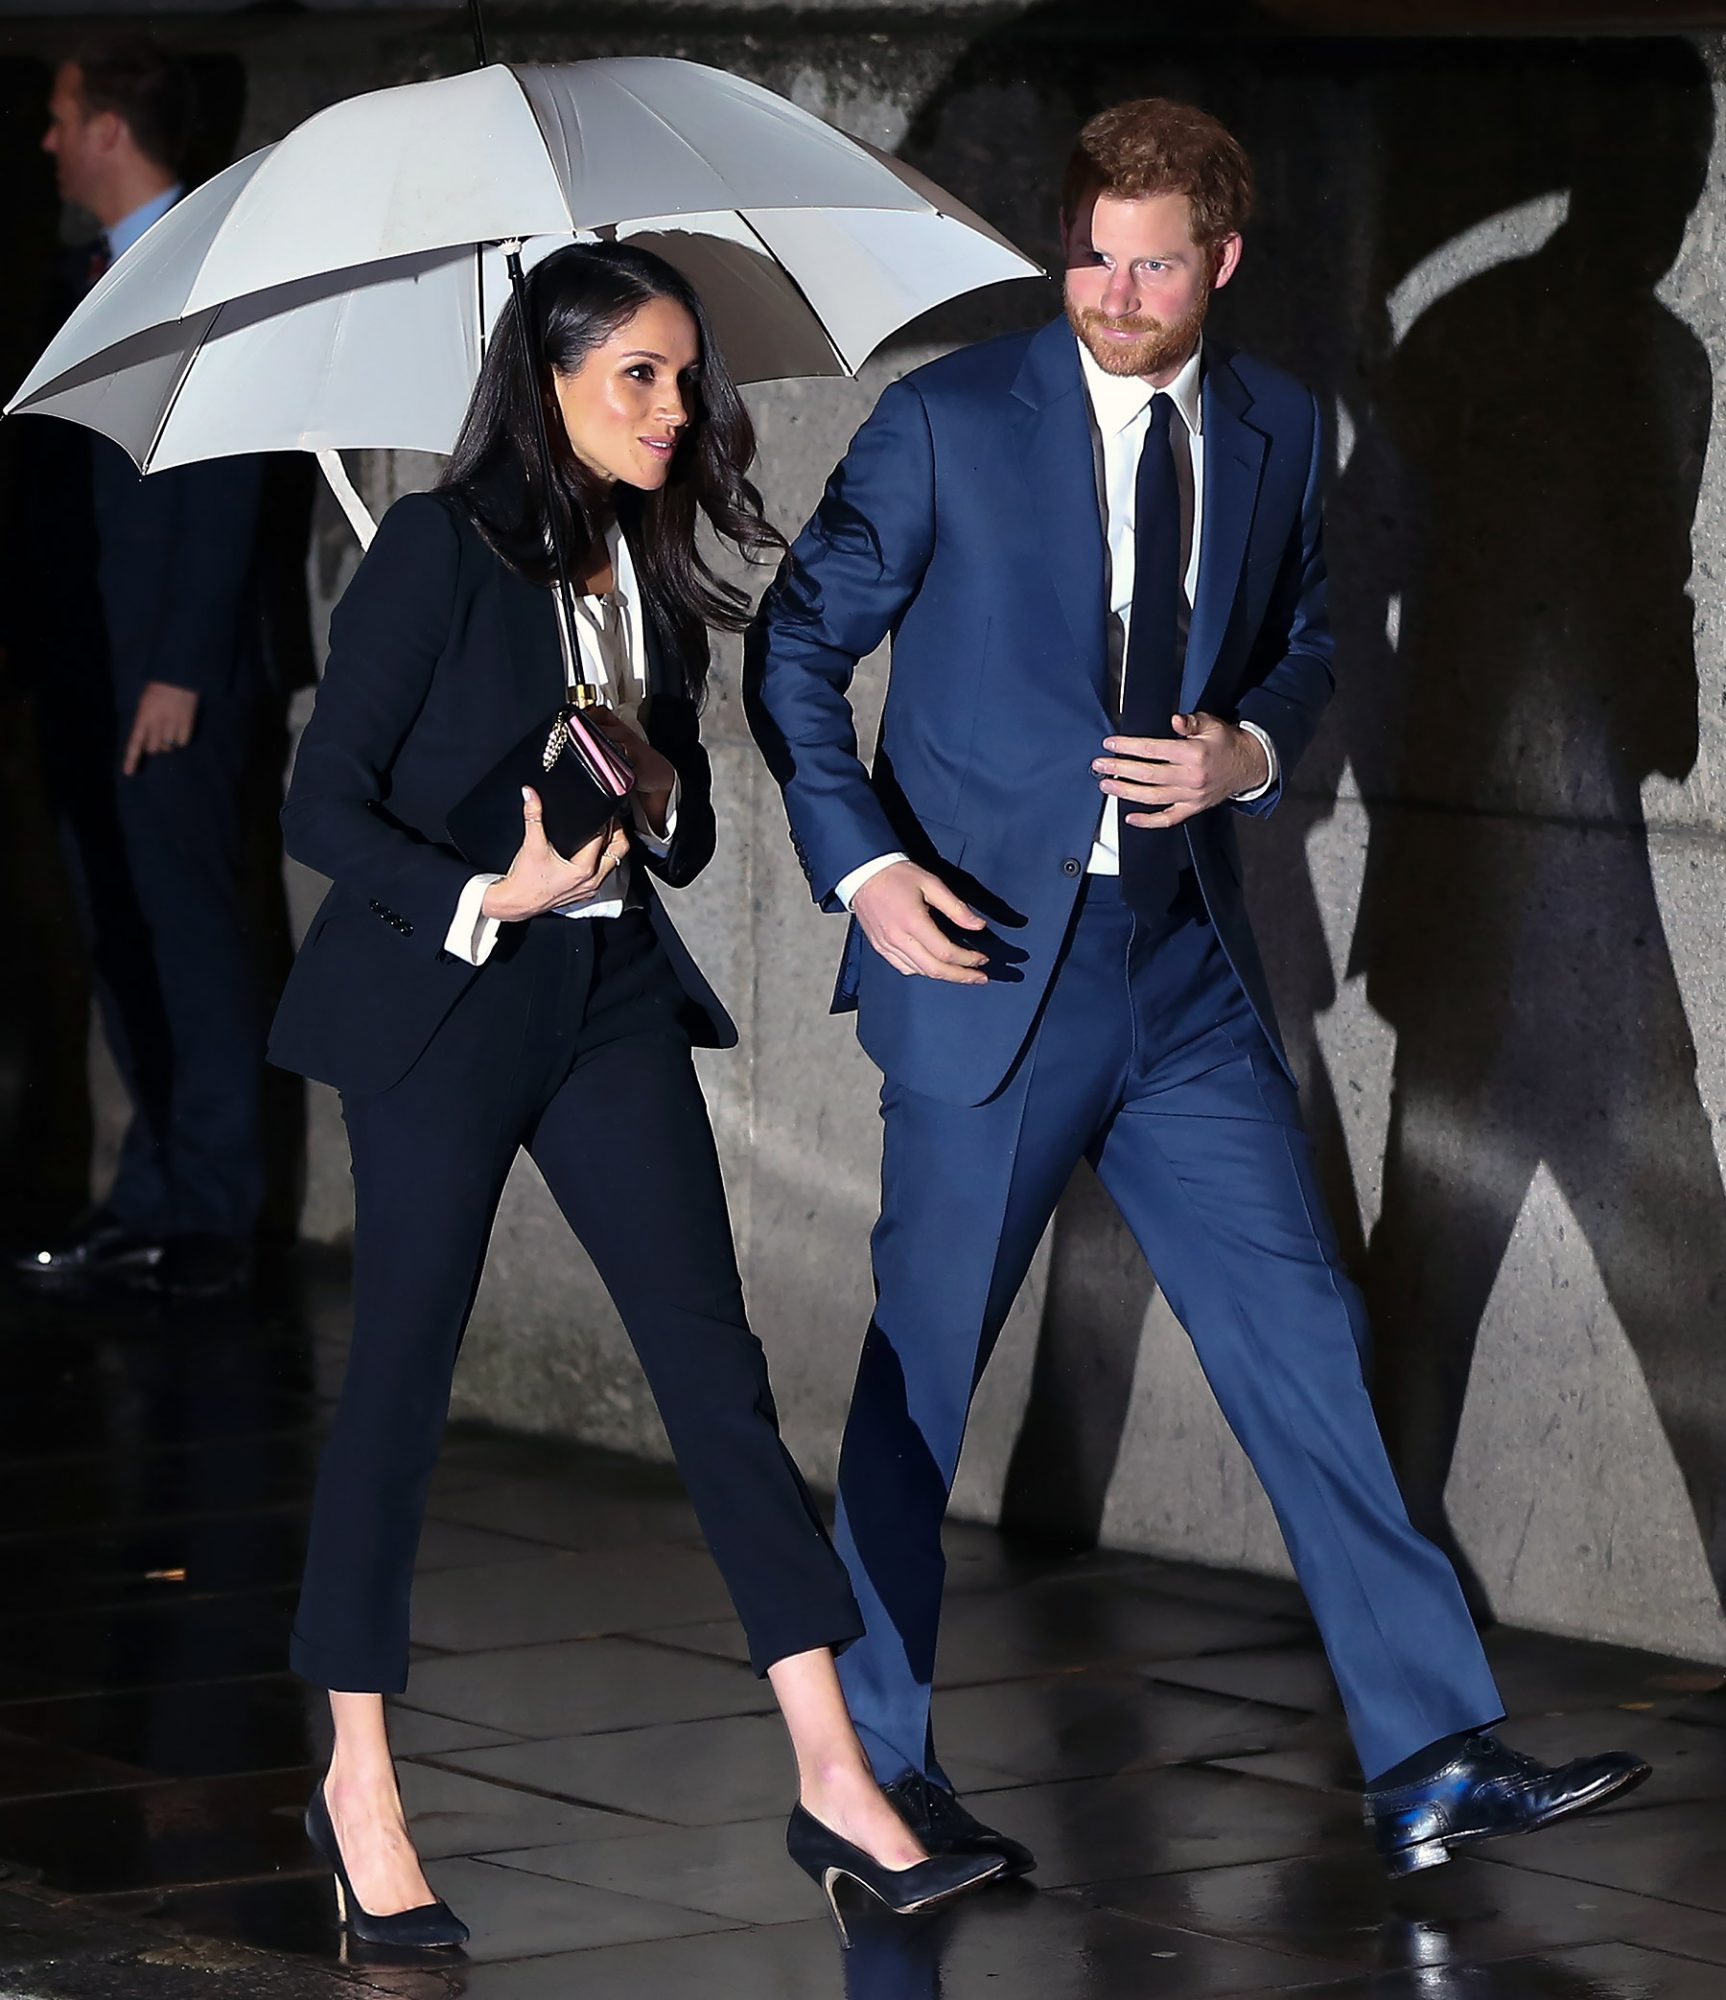 Prince Harry and Meghan Markle attend Endeavour Fund Awards Ceremony